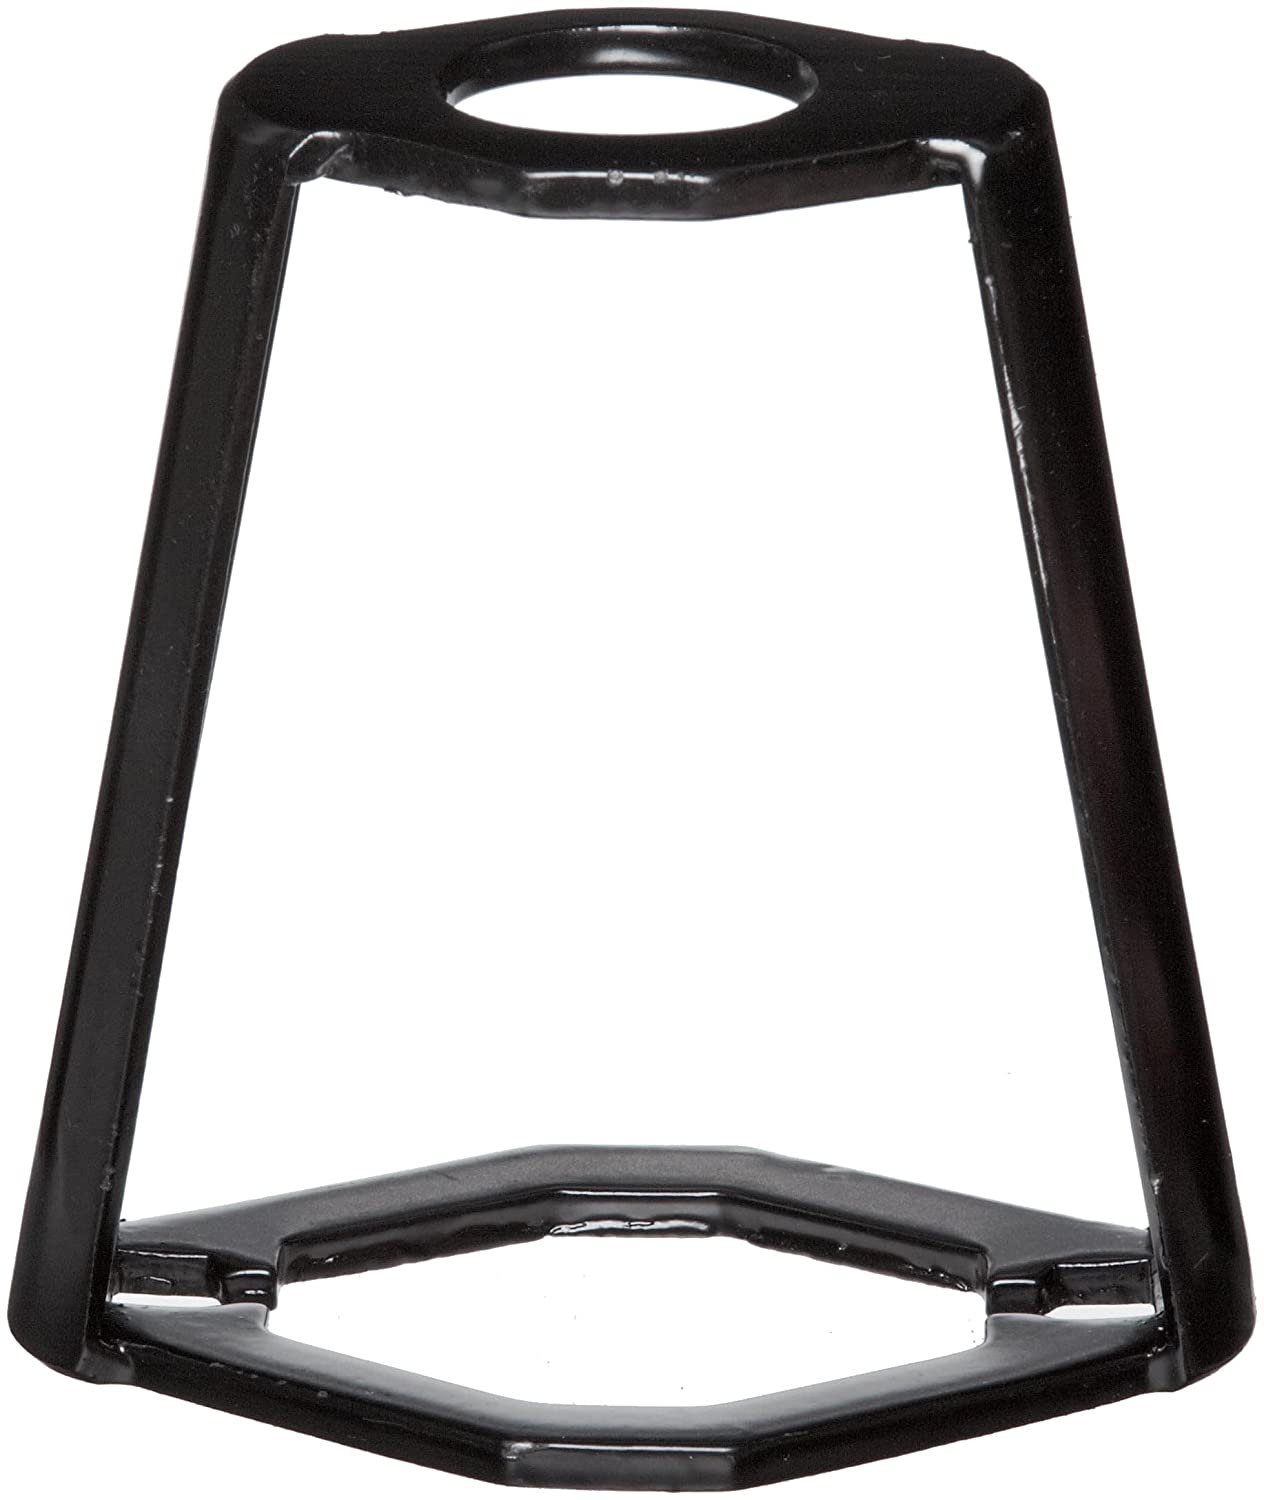 Posi Lock 20653 Puller Cage, 2 Jaw, For Use With 206 Puller